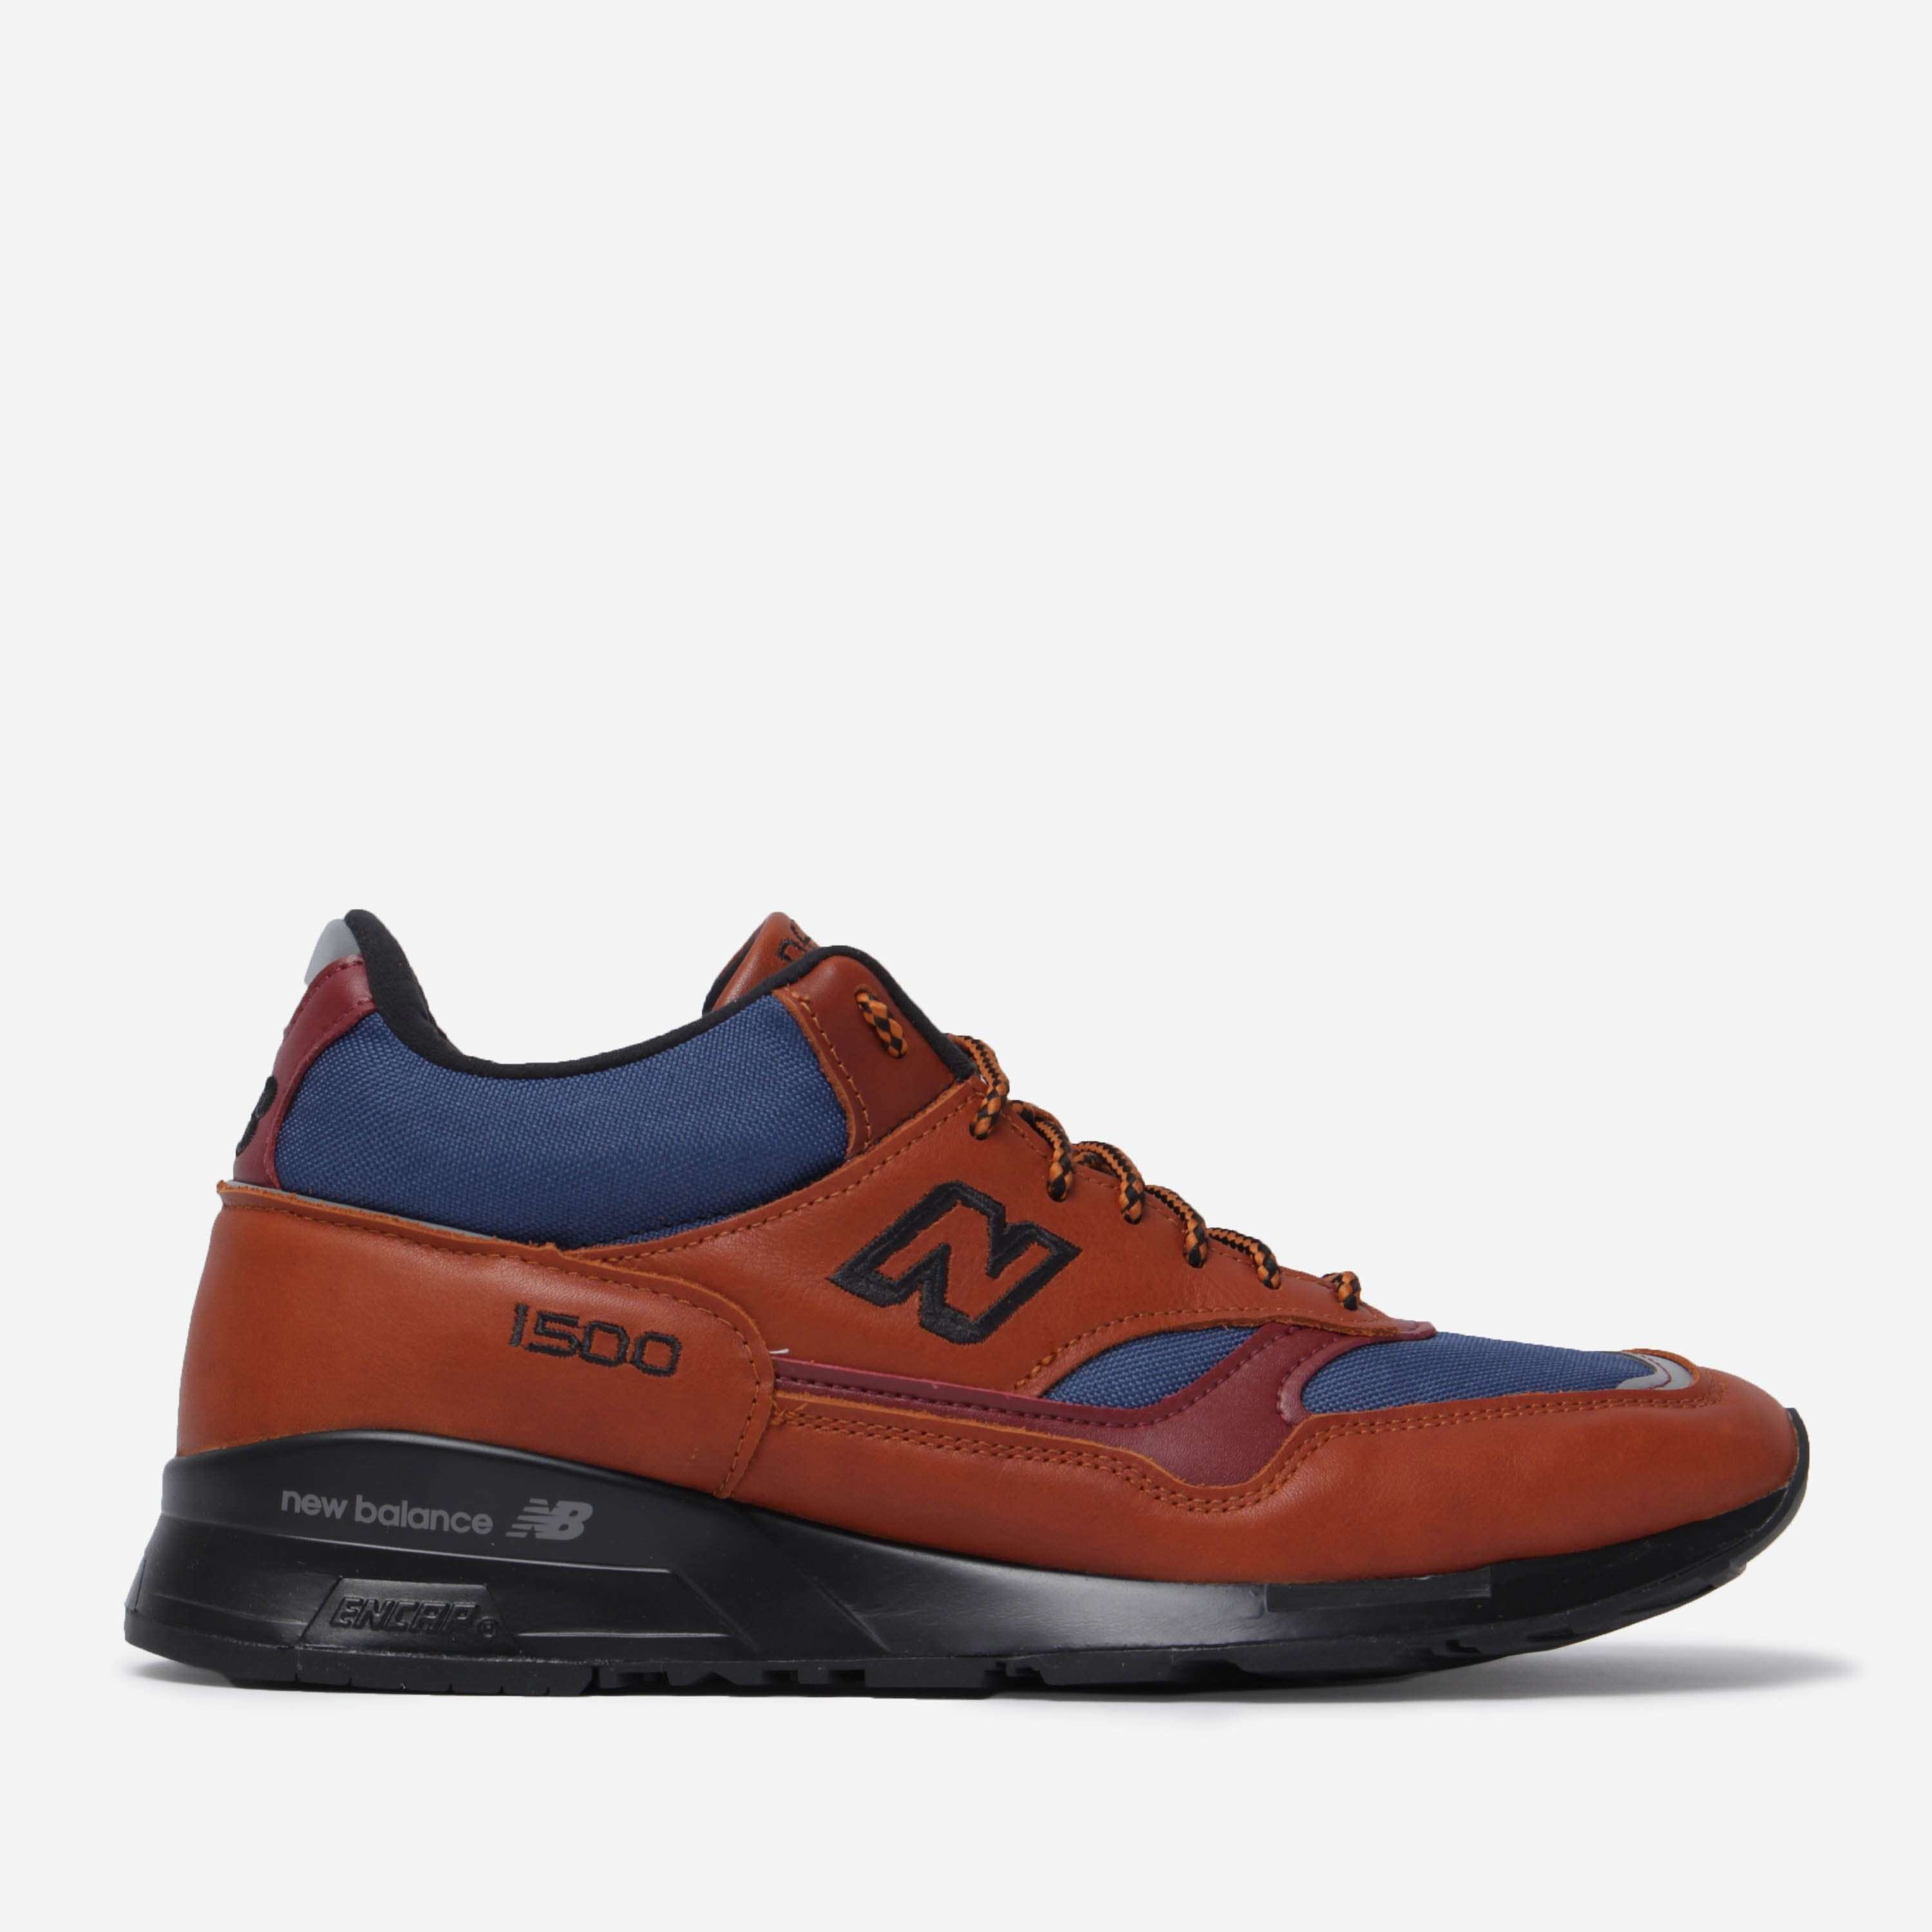 New Balance M 1500 OTN Made In England